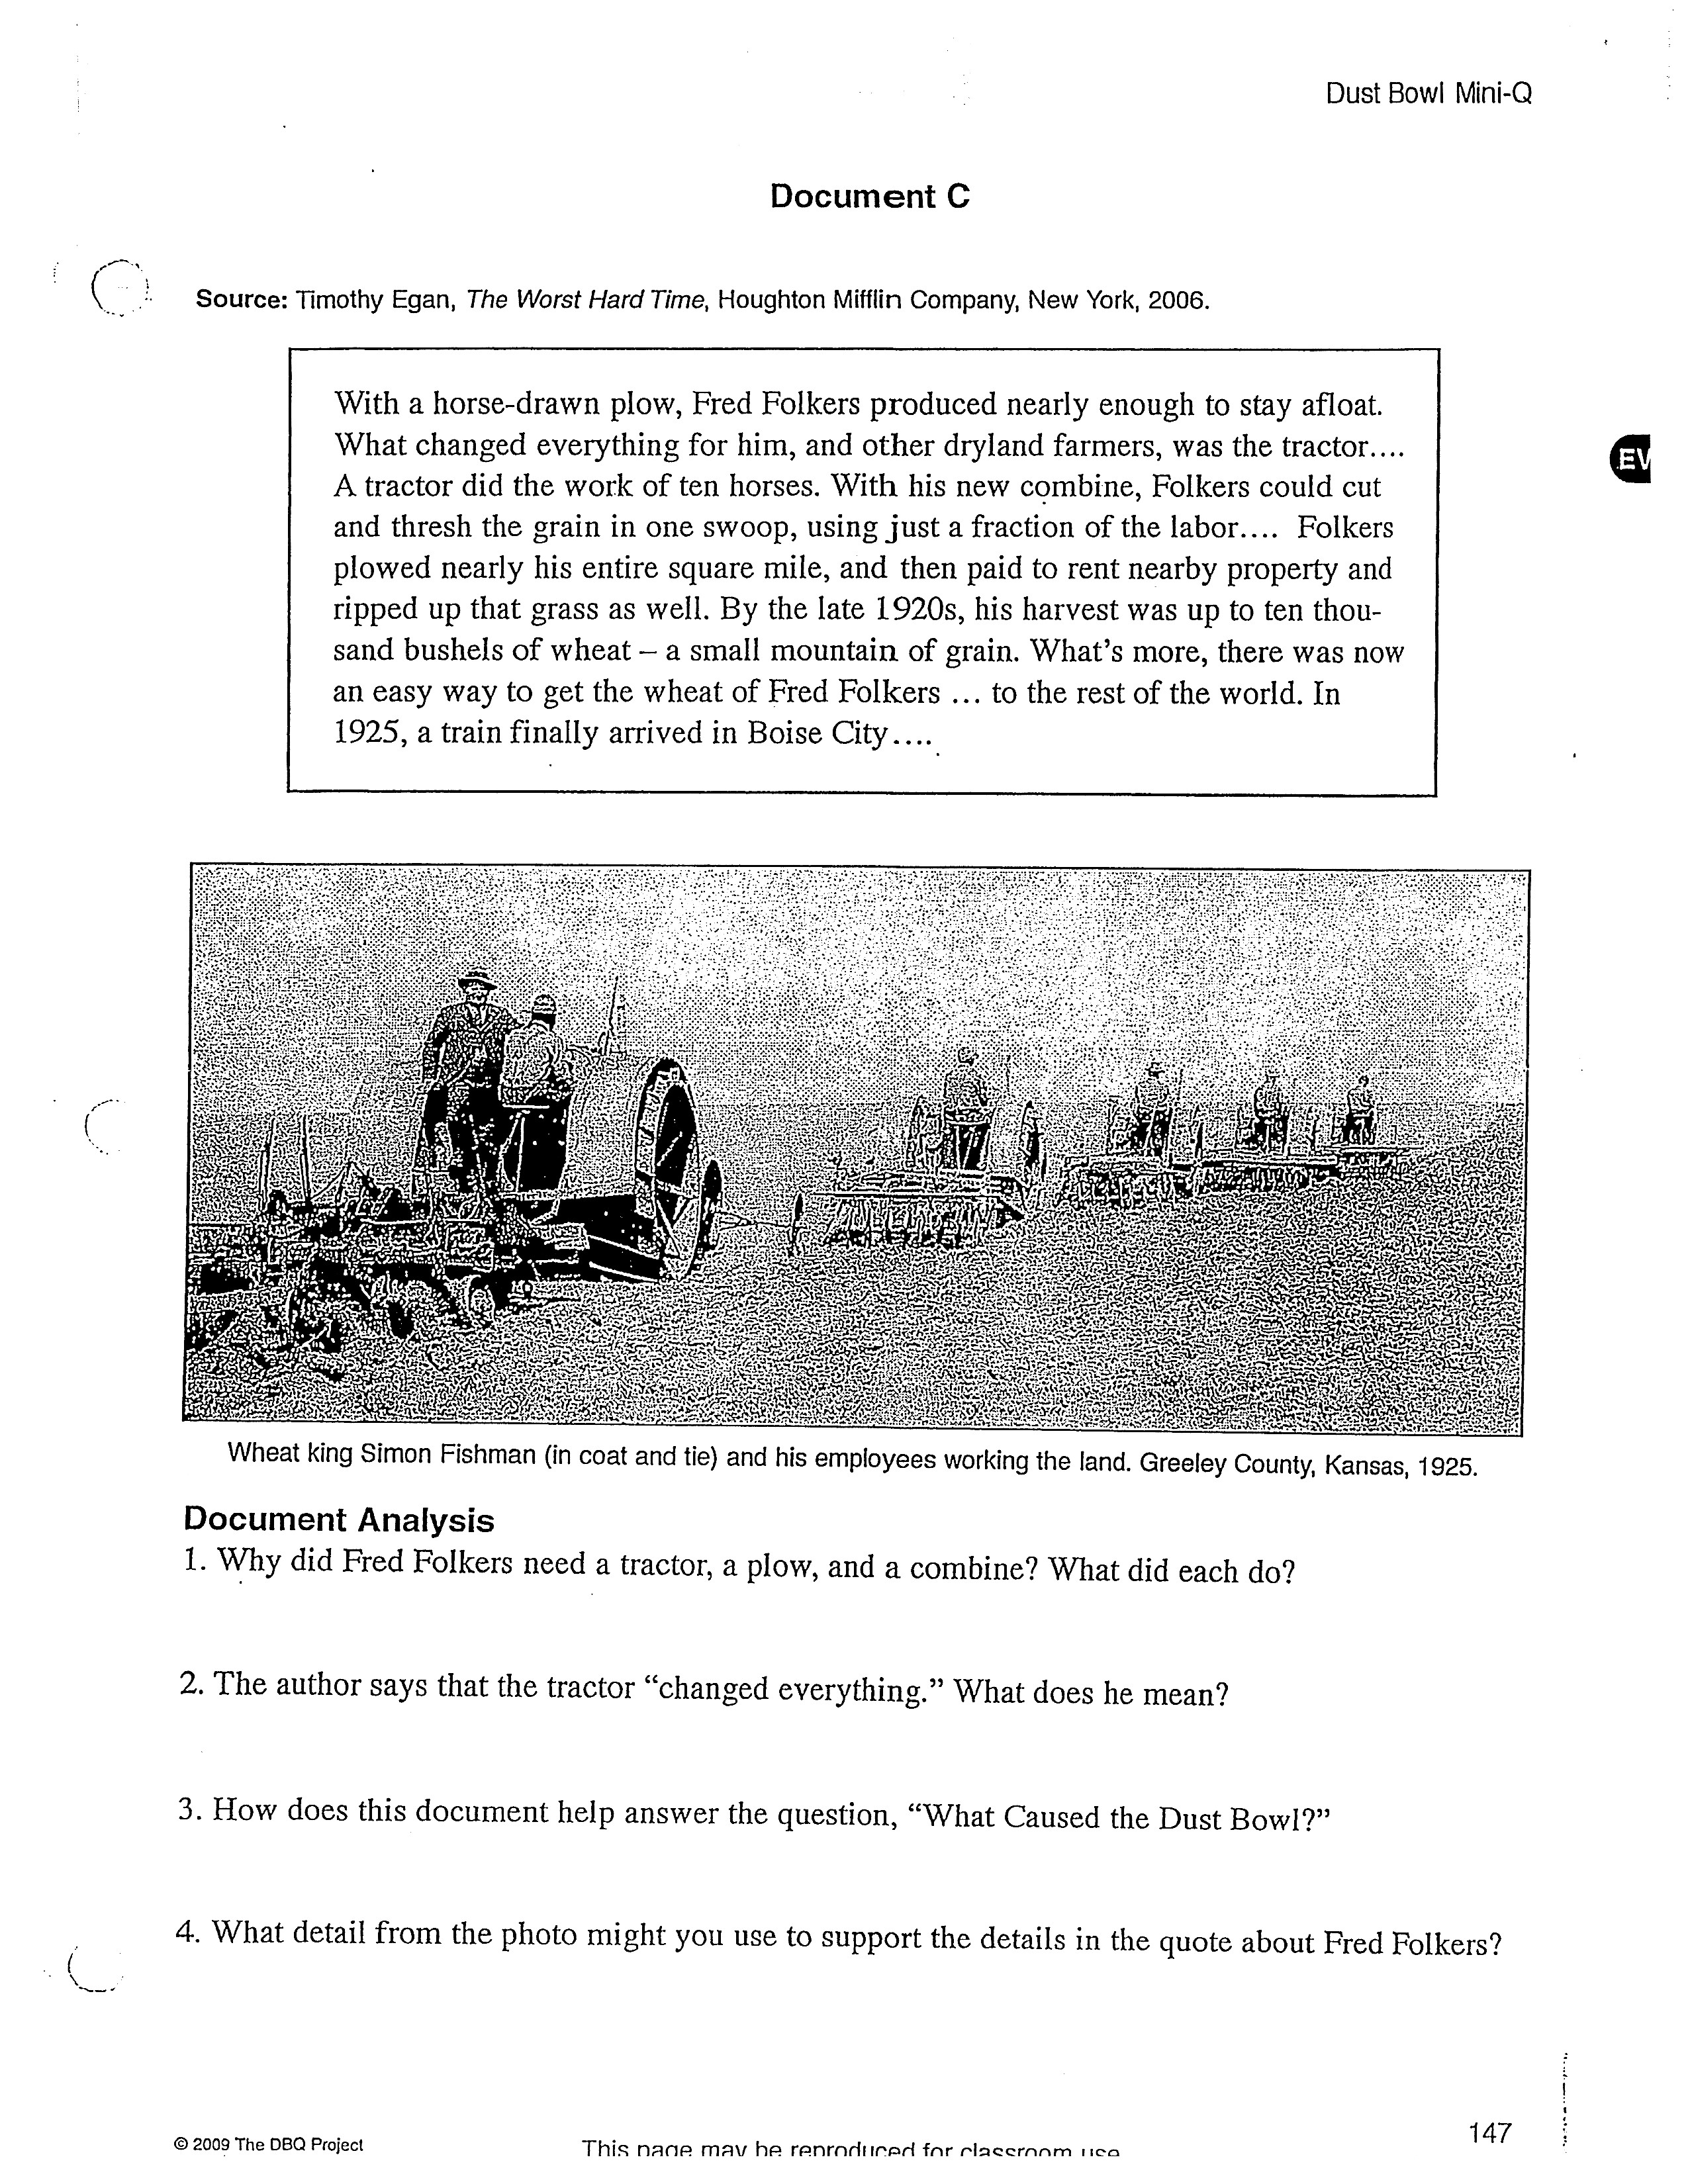 dust bowl migration essay Ual rating for a student's essay on the rating sheet provided, not directly   helped america to industrialize dust bowl migration: the farmers.